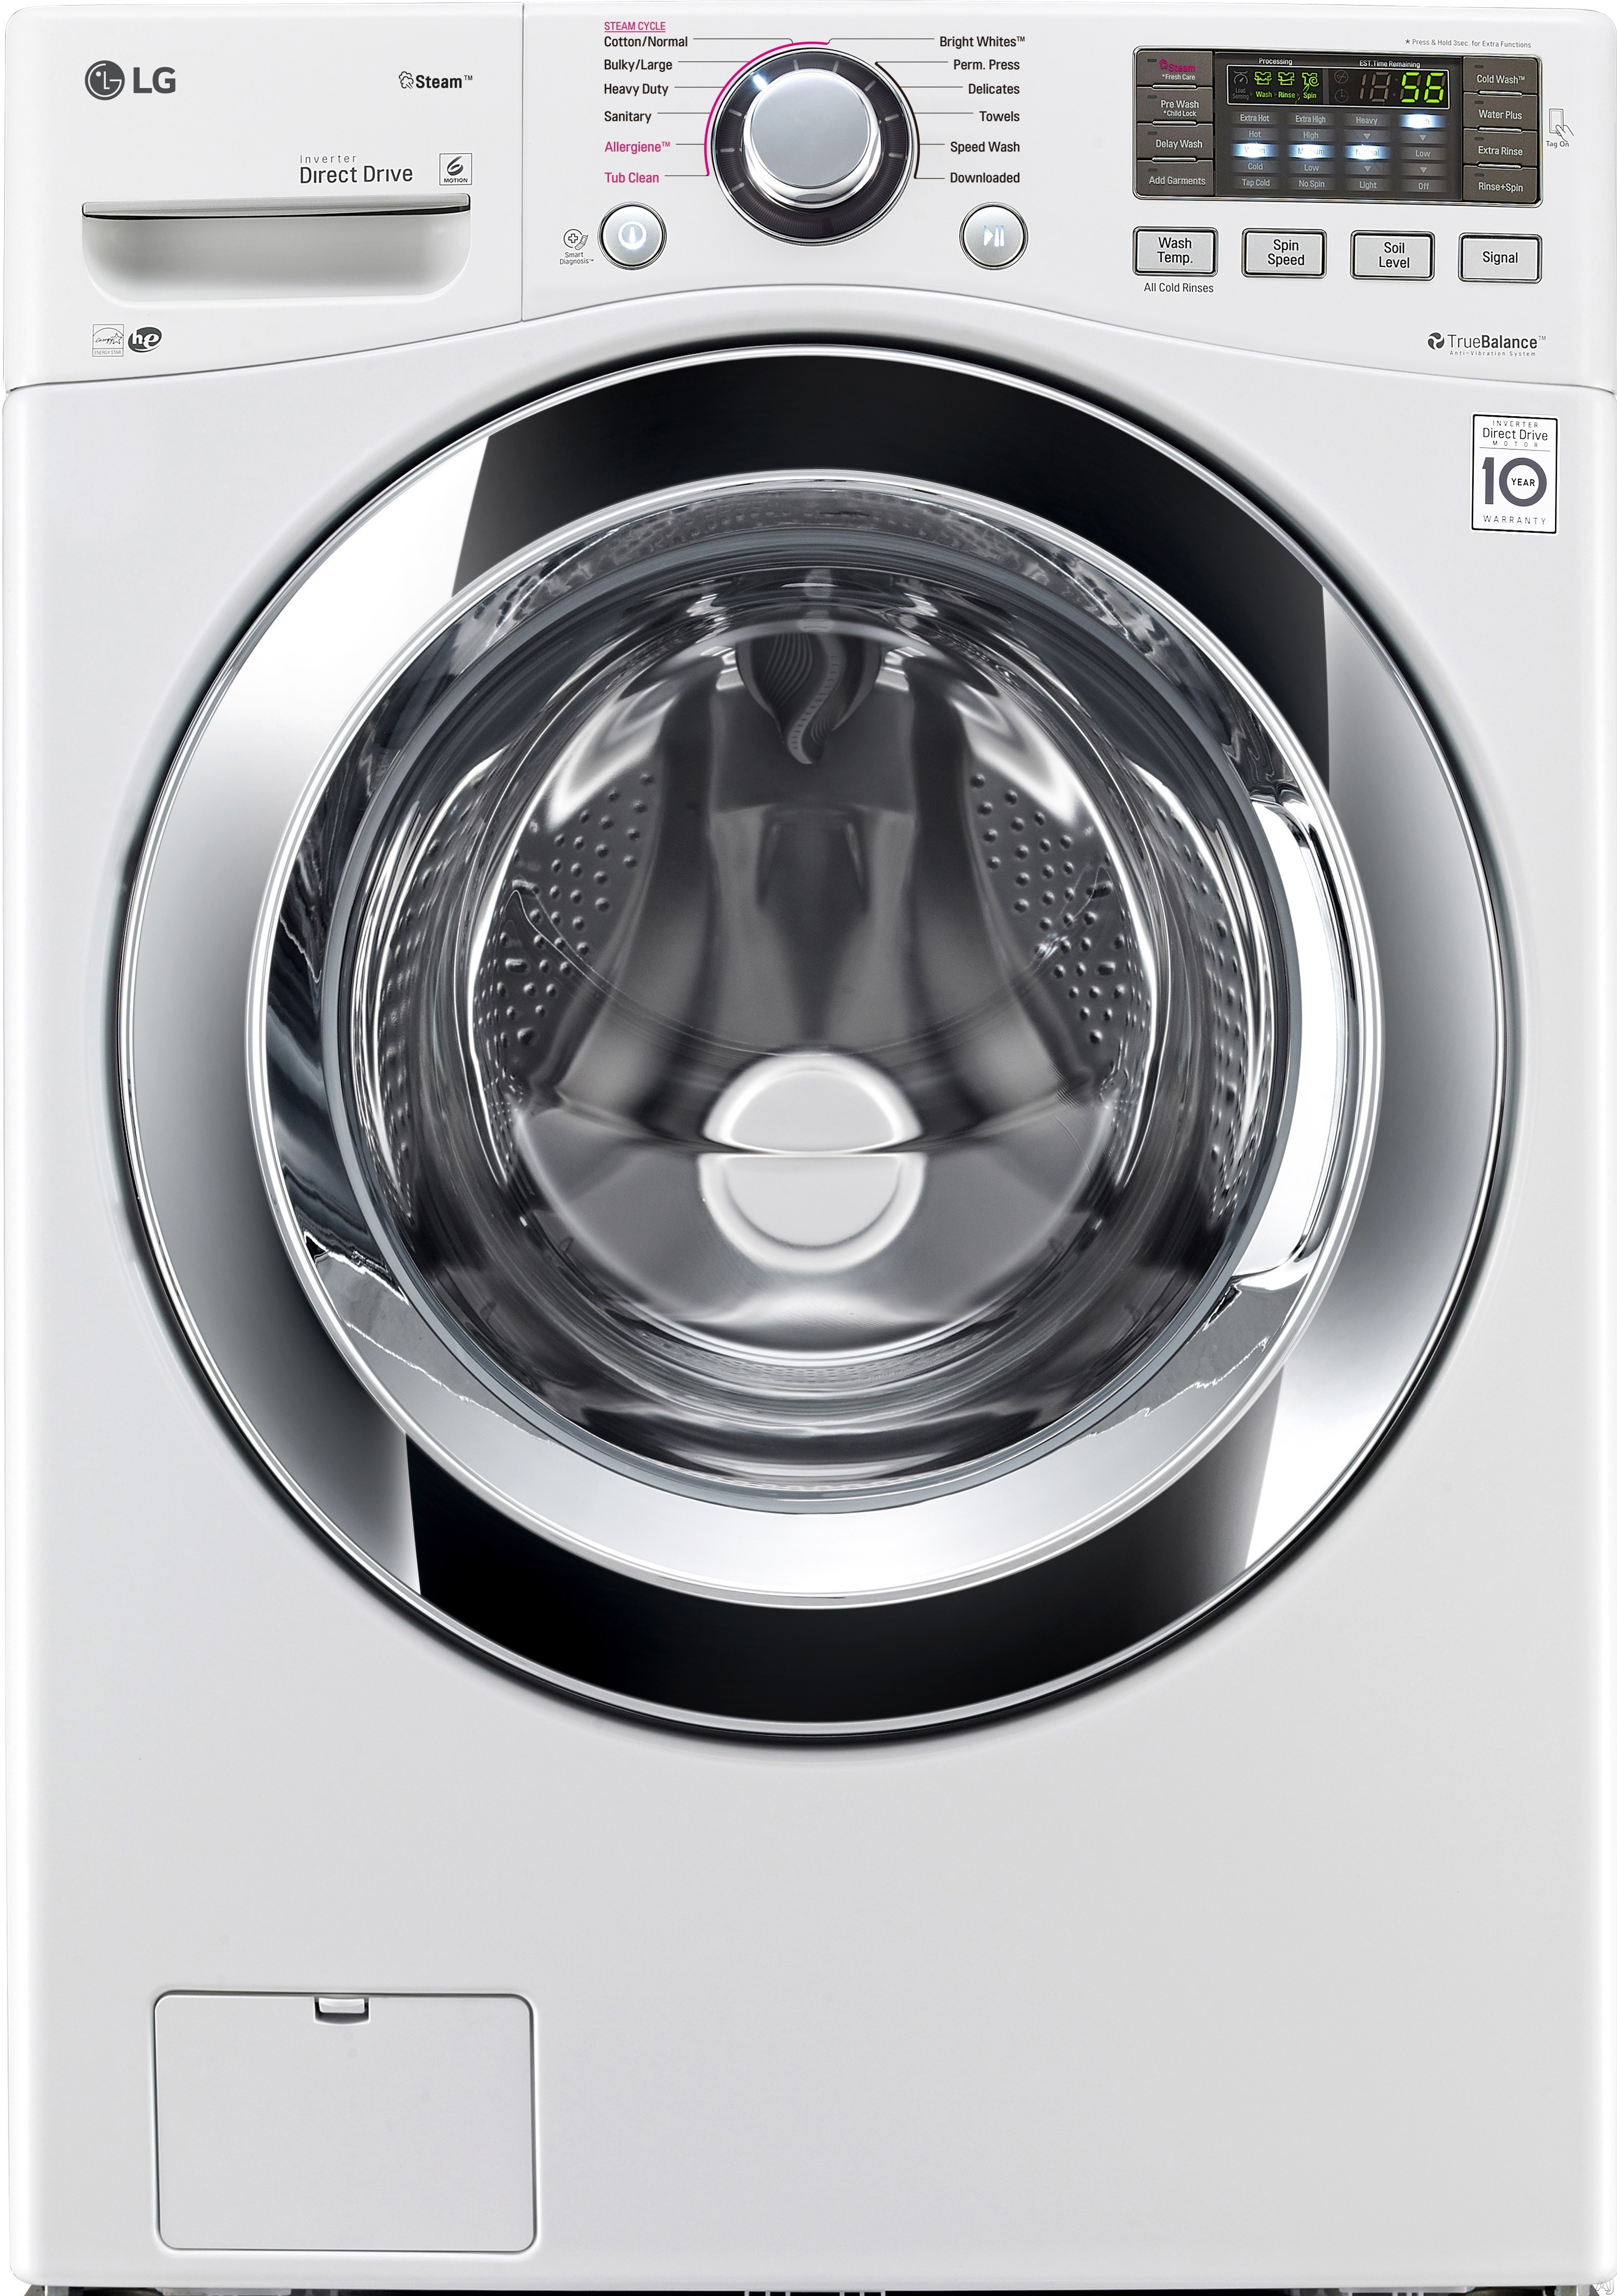 LG WM3670HWA 27 Inch 4.5 cu. ft. Front Load Washer with Steam, Smart ThinQ (Wi-Fi), NFC Tag-On Technology, Sanitary Cycle, 9 Wash Cycles, Allergen Cycle, NeveRust™ Stainless Steel Drum, 4-Tray Dispenser and ENERGY STAR®: White